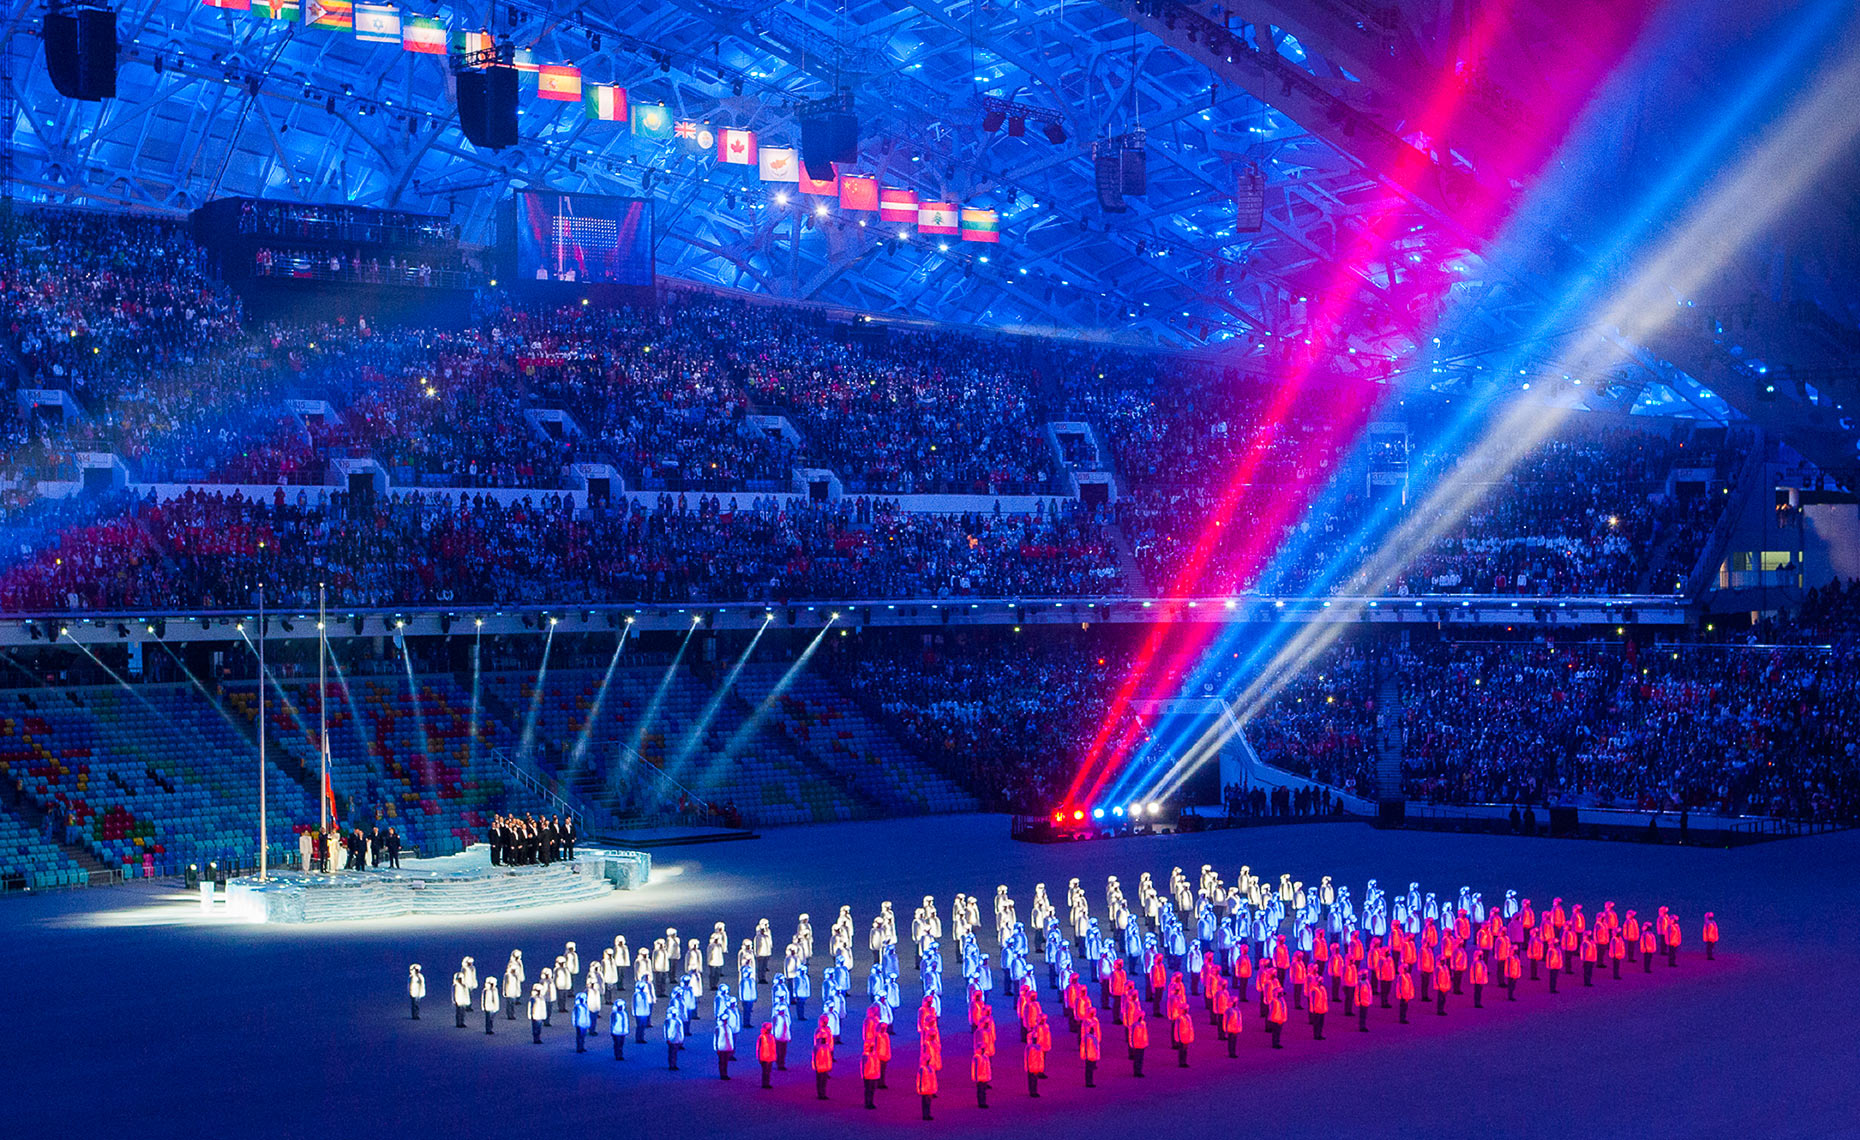 11_Sochi_Olympics_Russia_Chris_Wellhausen